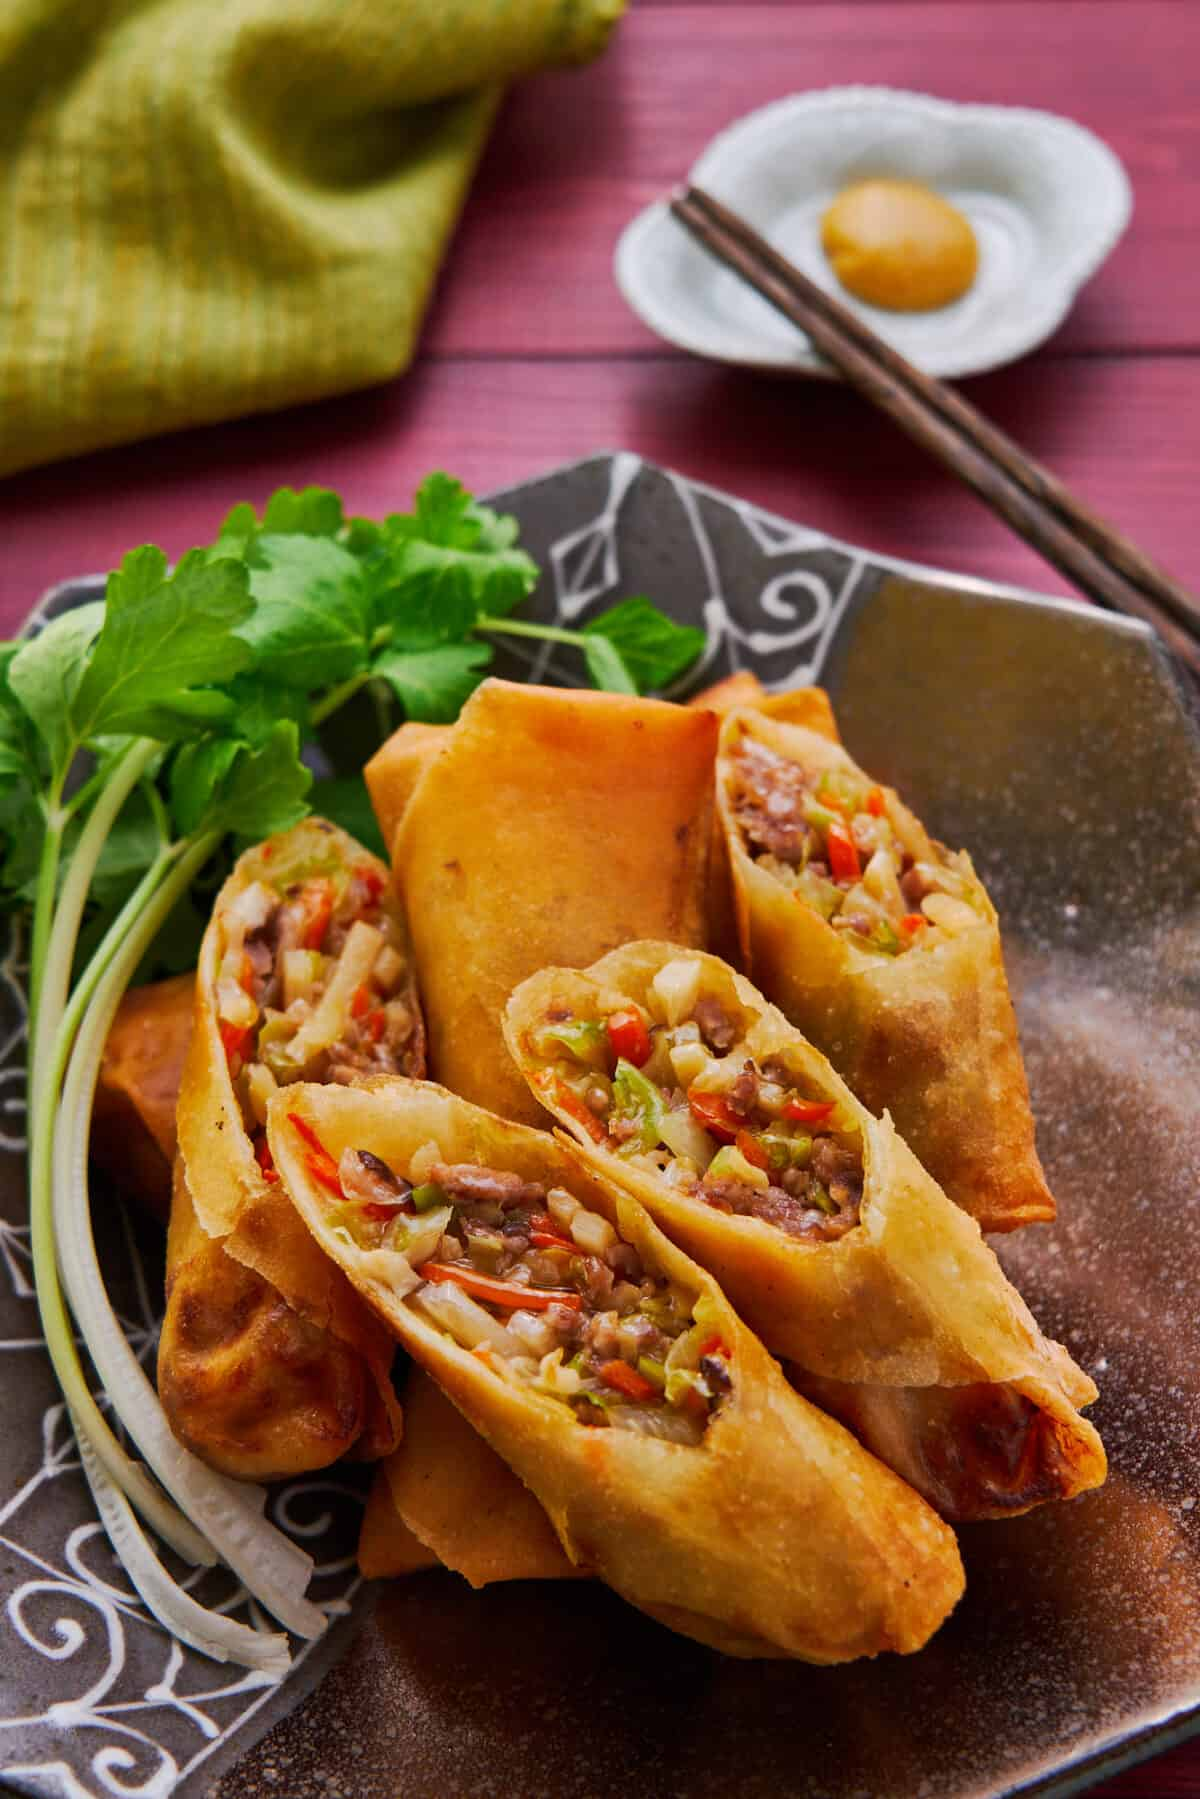 Shatteringly crisp on the outside and loaded with vegetables, mushrooms, and pork in a savory gravy on the inside, this self-saucing Japanese-style spring roll is mouthwateringly good!